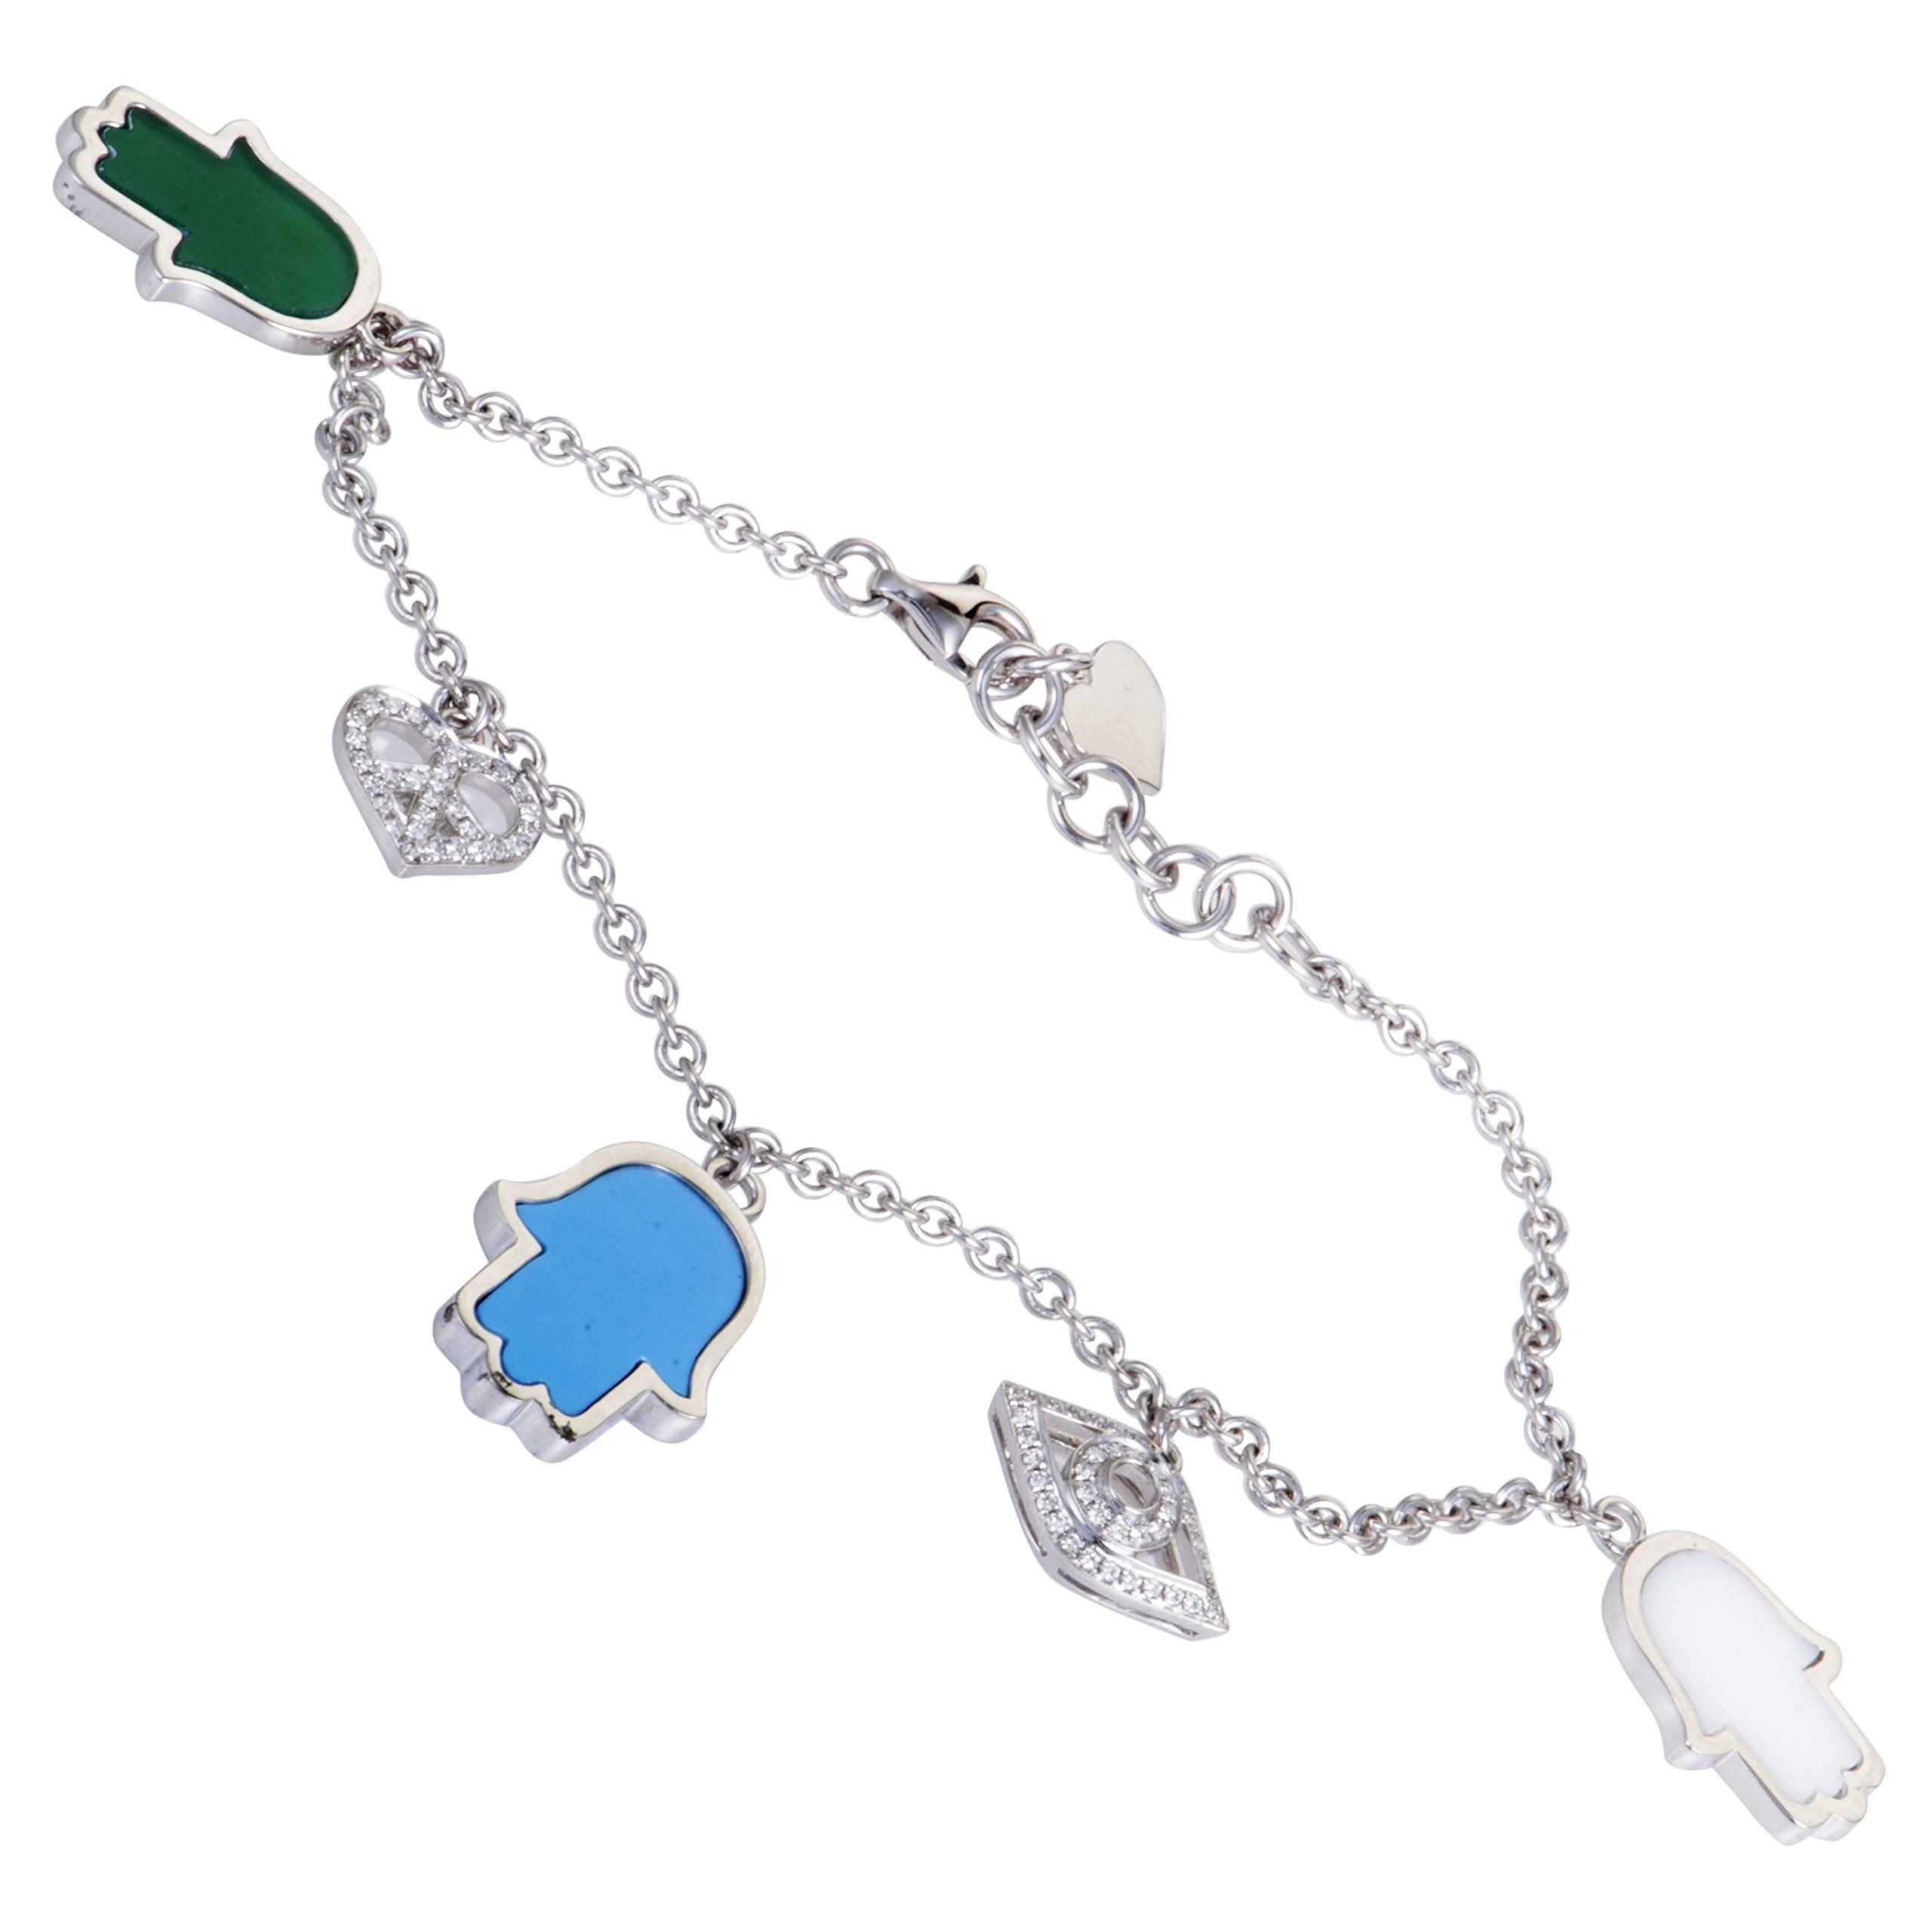 Luxury Bazaar 18K White Gold Diamond Turquoise and Agate Charm Bracelet